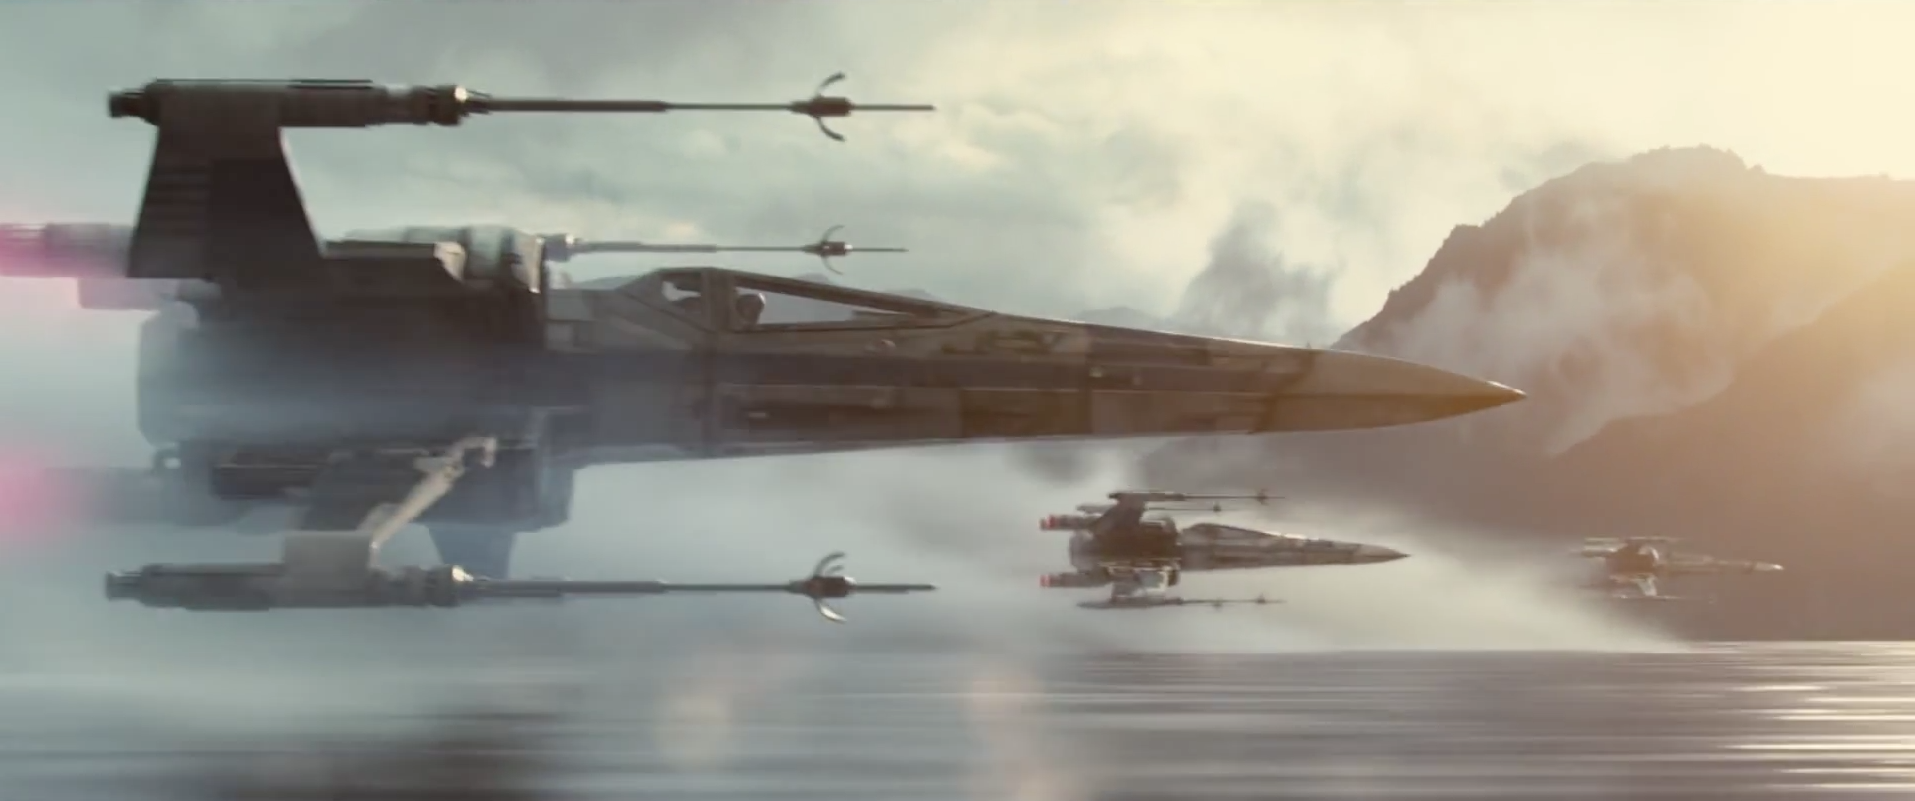 Star Wars: Rogue One is the first Star Wars spinoff film, coming December 2016